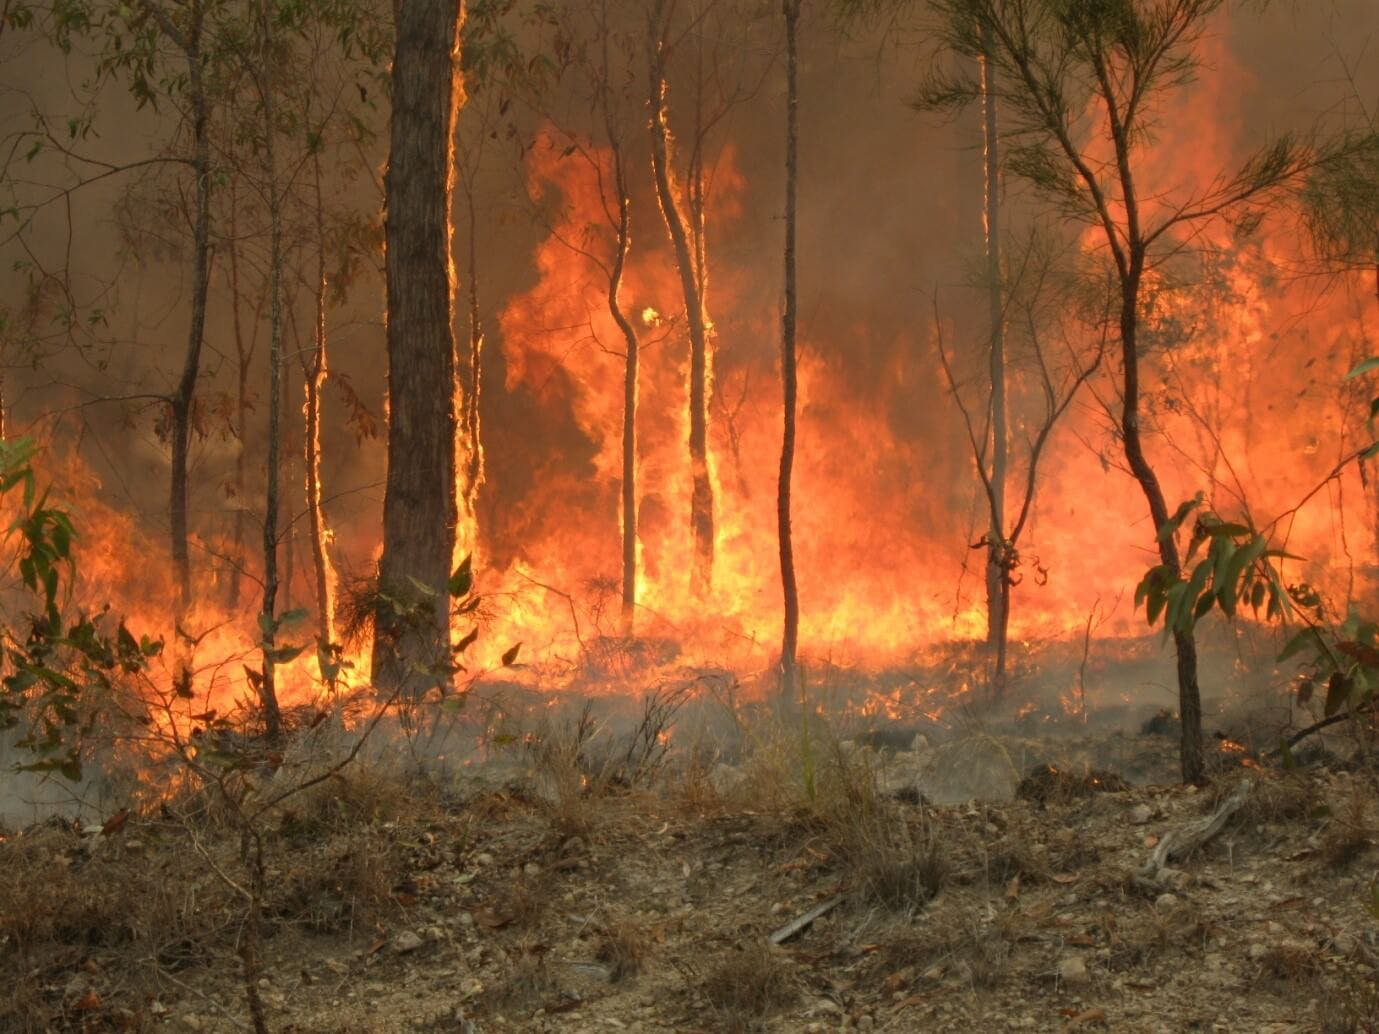 Rappel fire fighters are used to combat remote bushfires.